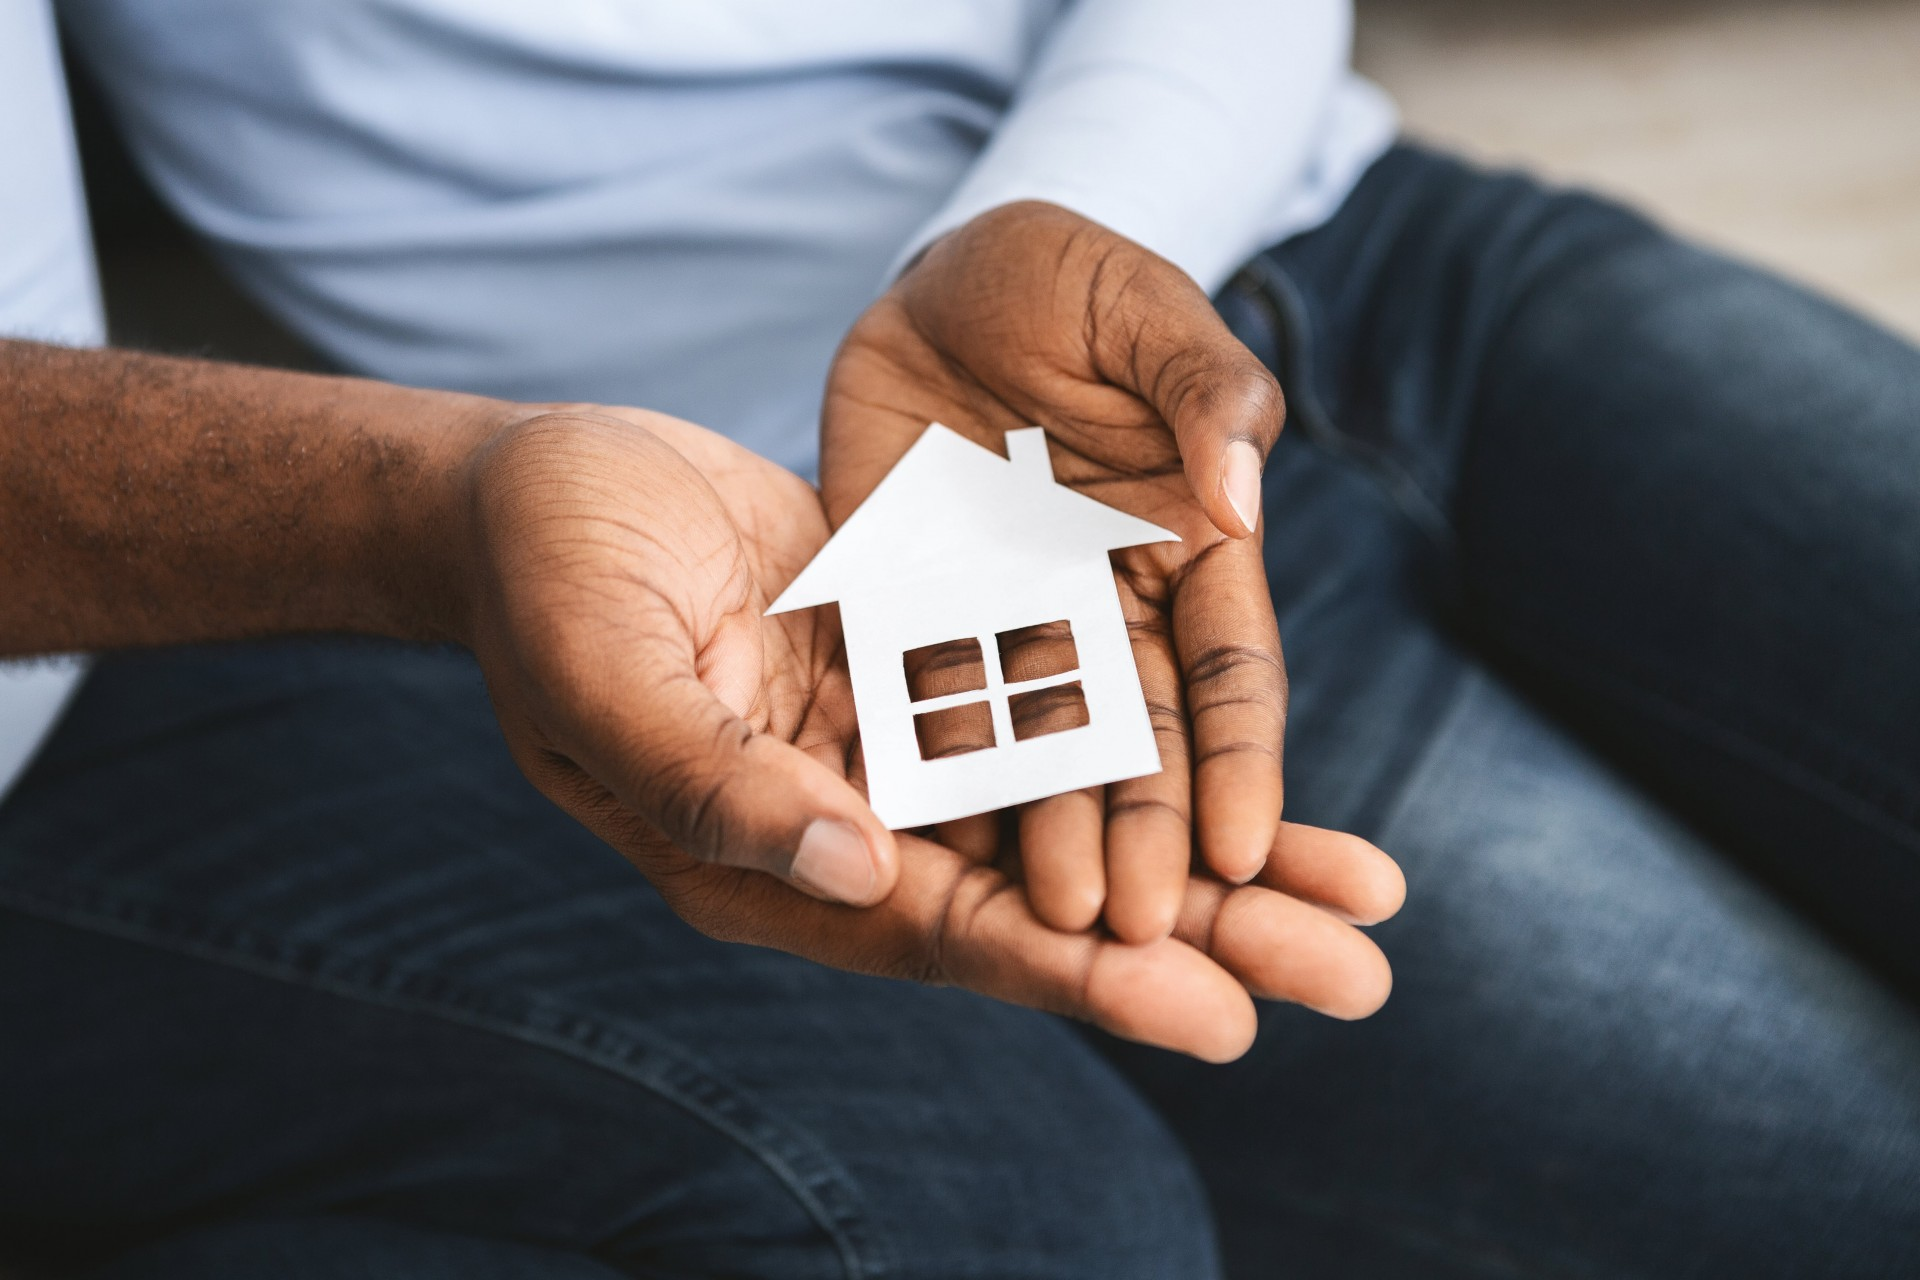 How to Transfer Real Estate Title from a Parent to a Child